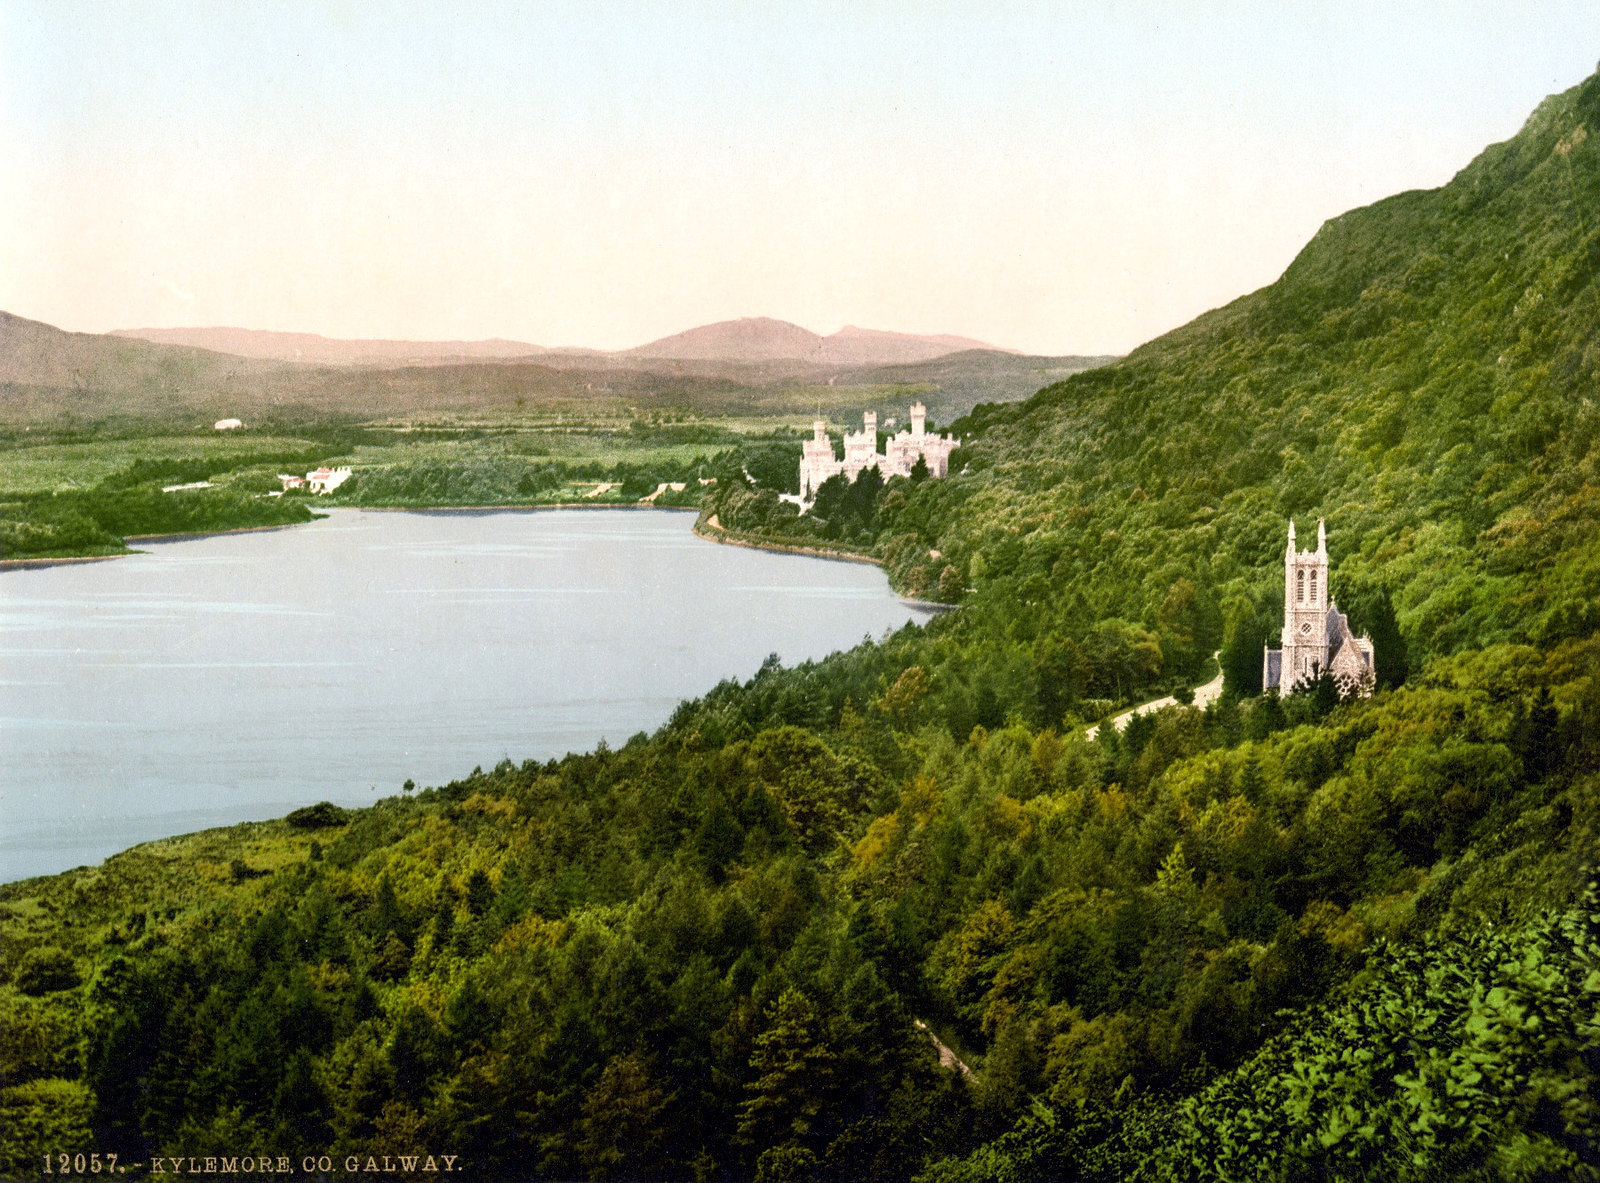 Kylemore in 1895